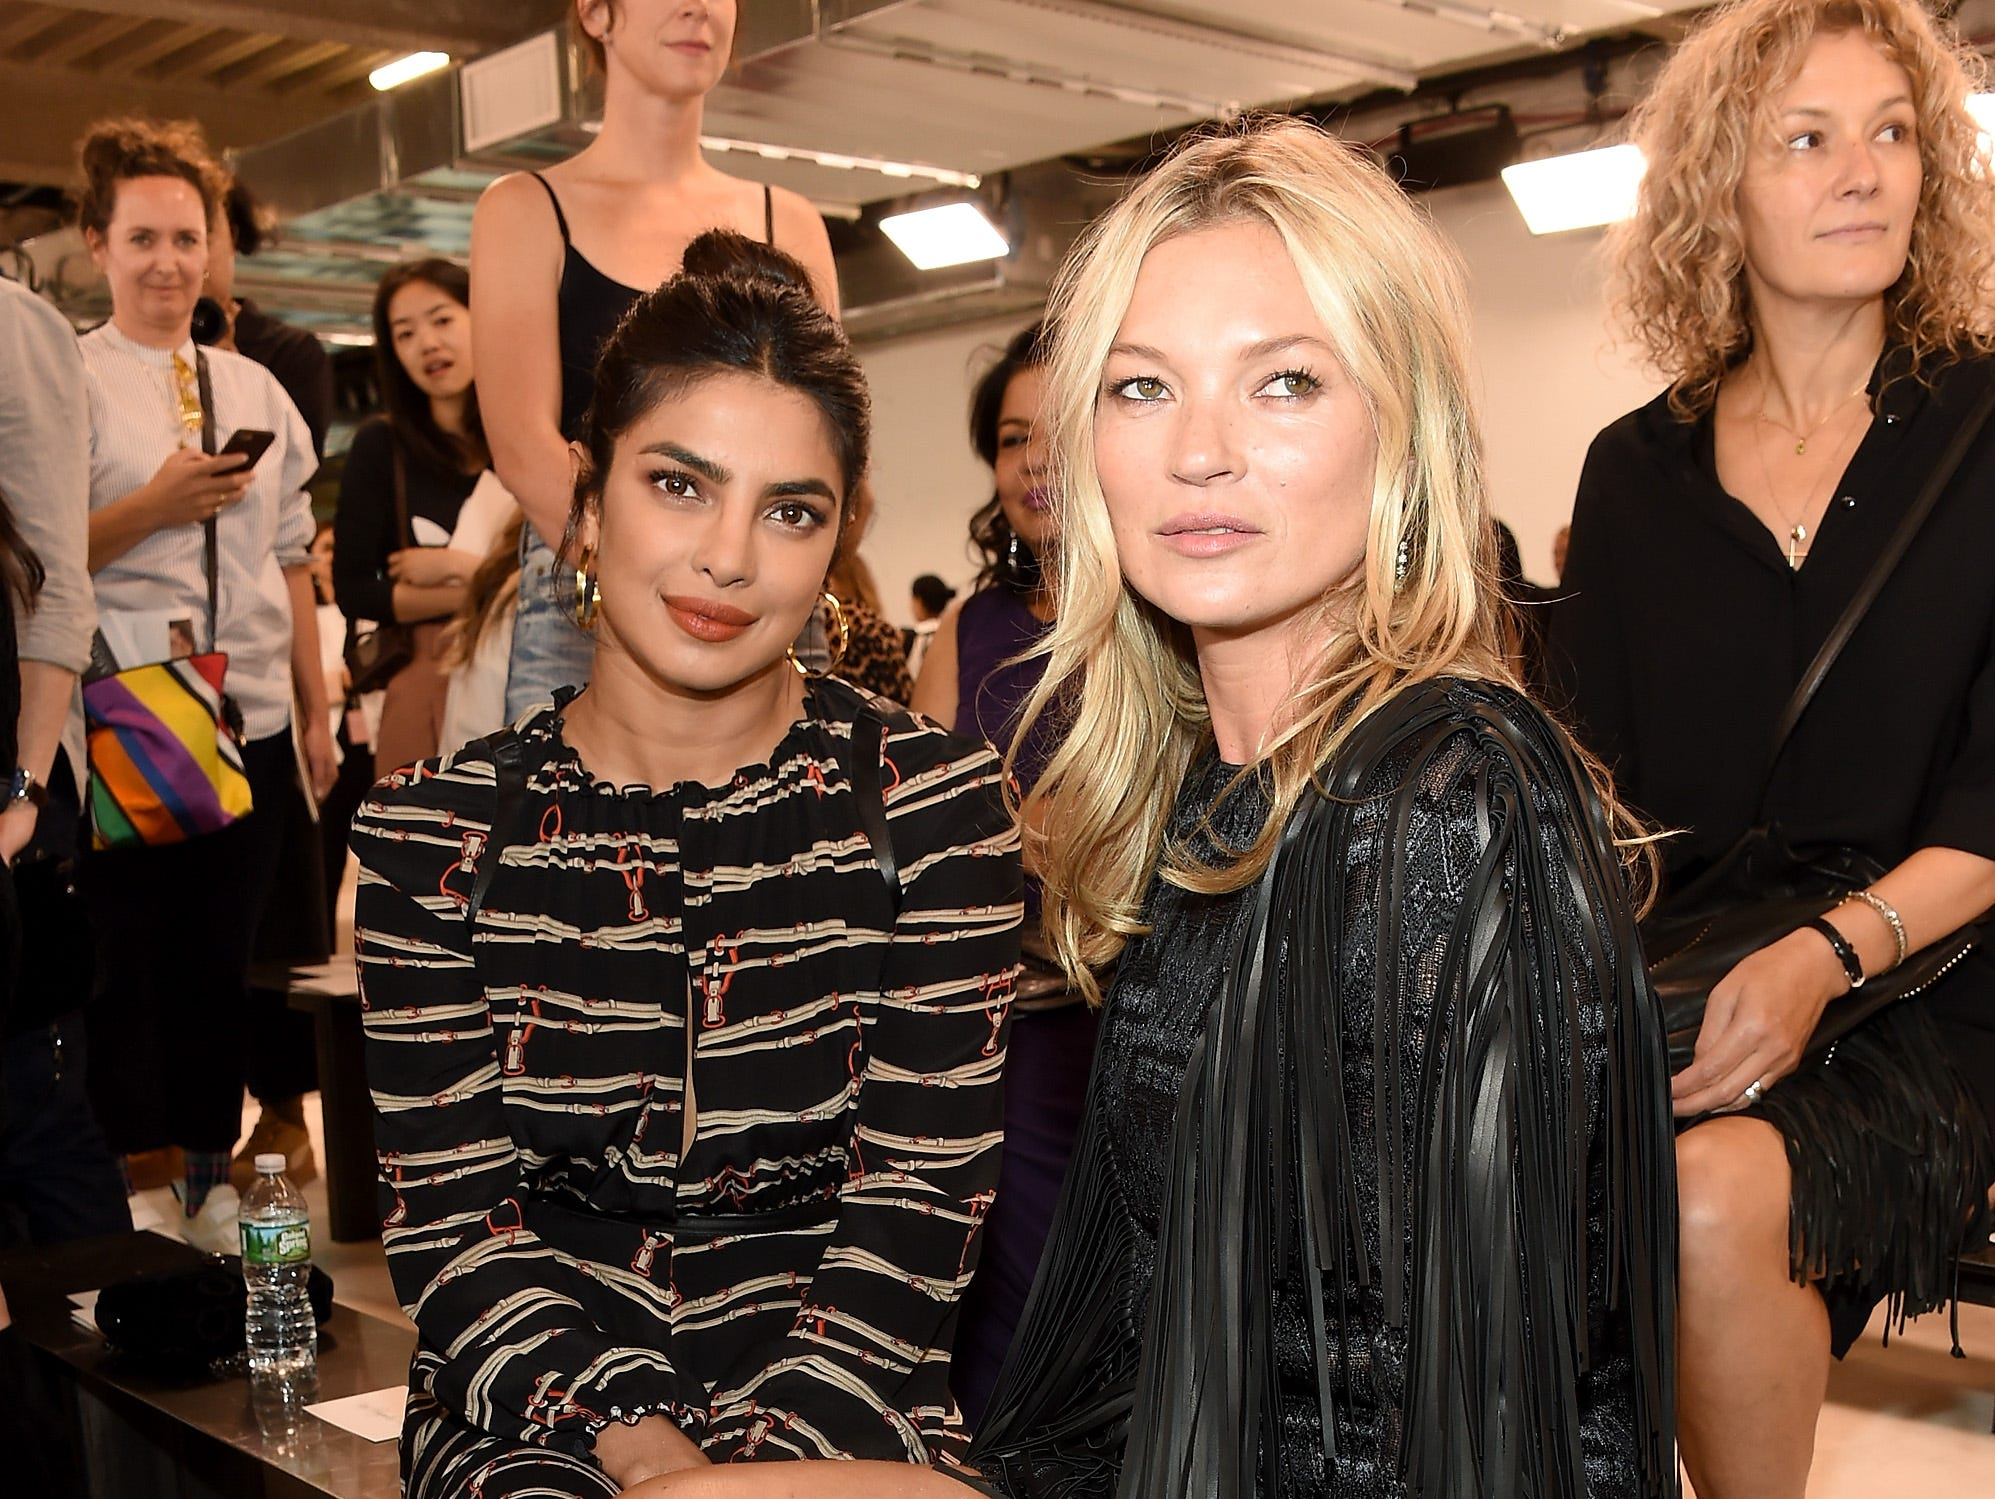 NEW YORK, NY - SEPTEMBER 08:  Actress Priyanka Chopra (L) and Kate Moss pose backstage at the Longchamp Fashion Show during New York Fashion Week at World Trade Center on September 8, 2018 in New York City.  (Photo by Dimitrios Kambouris/Getty Images) ORG XMIT: 775216458 ORIG FILE ID: 1029393460